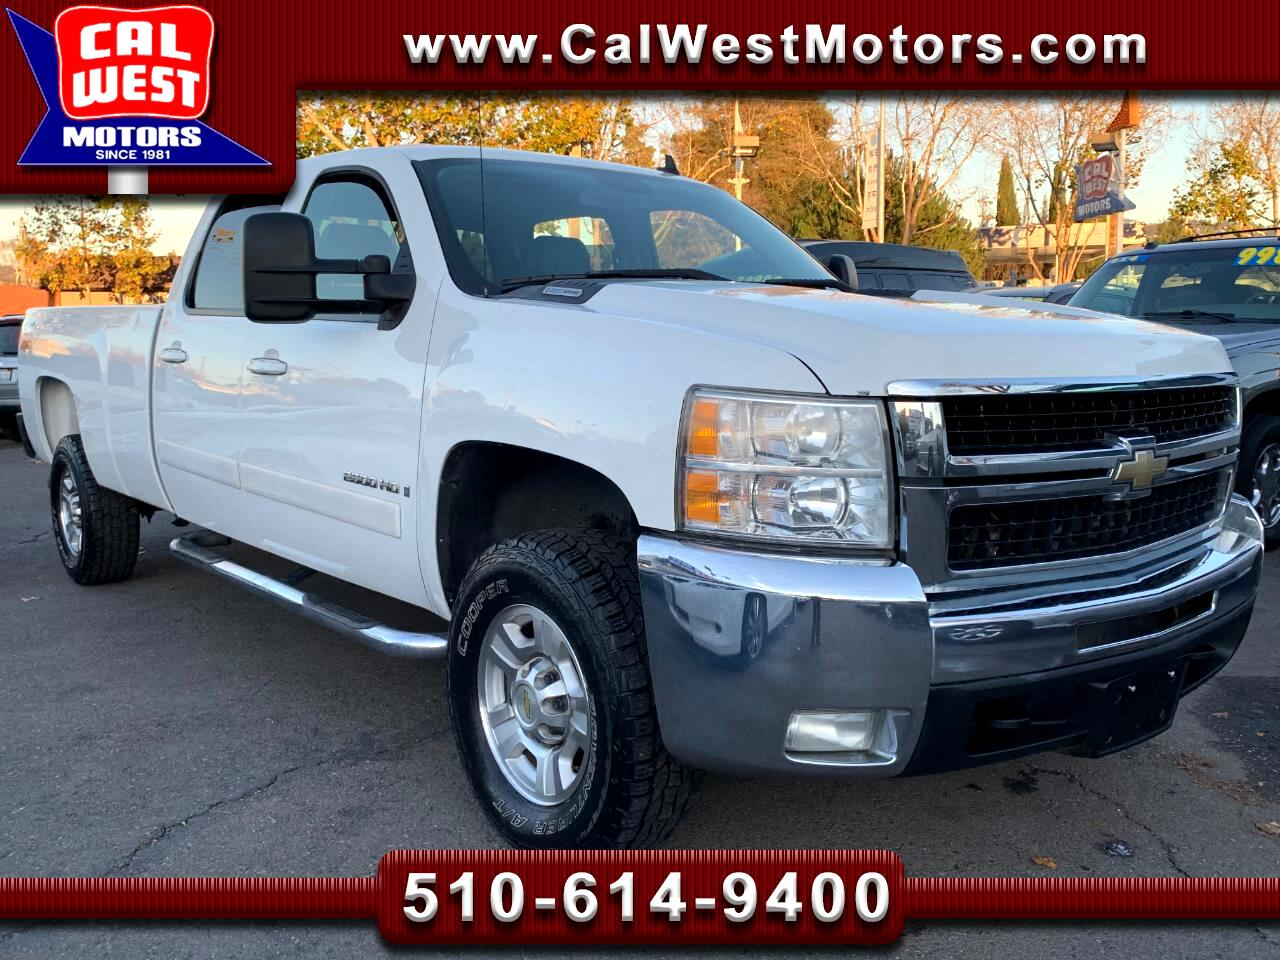 2008 Chevrolet Silverado 2500HD 4X4 LTZ Crew Cab 8FT NAV Duramax-Allison 1Owner